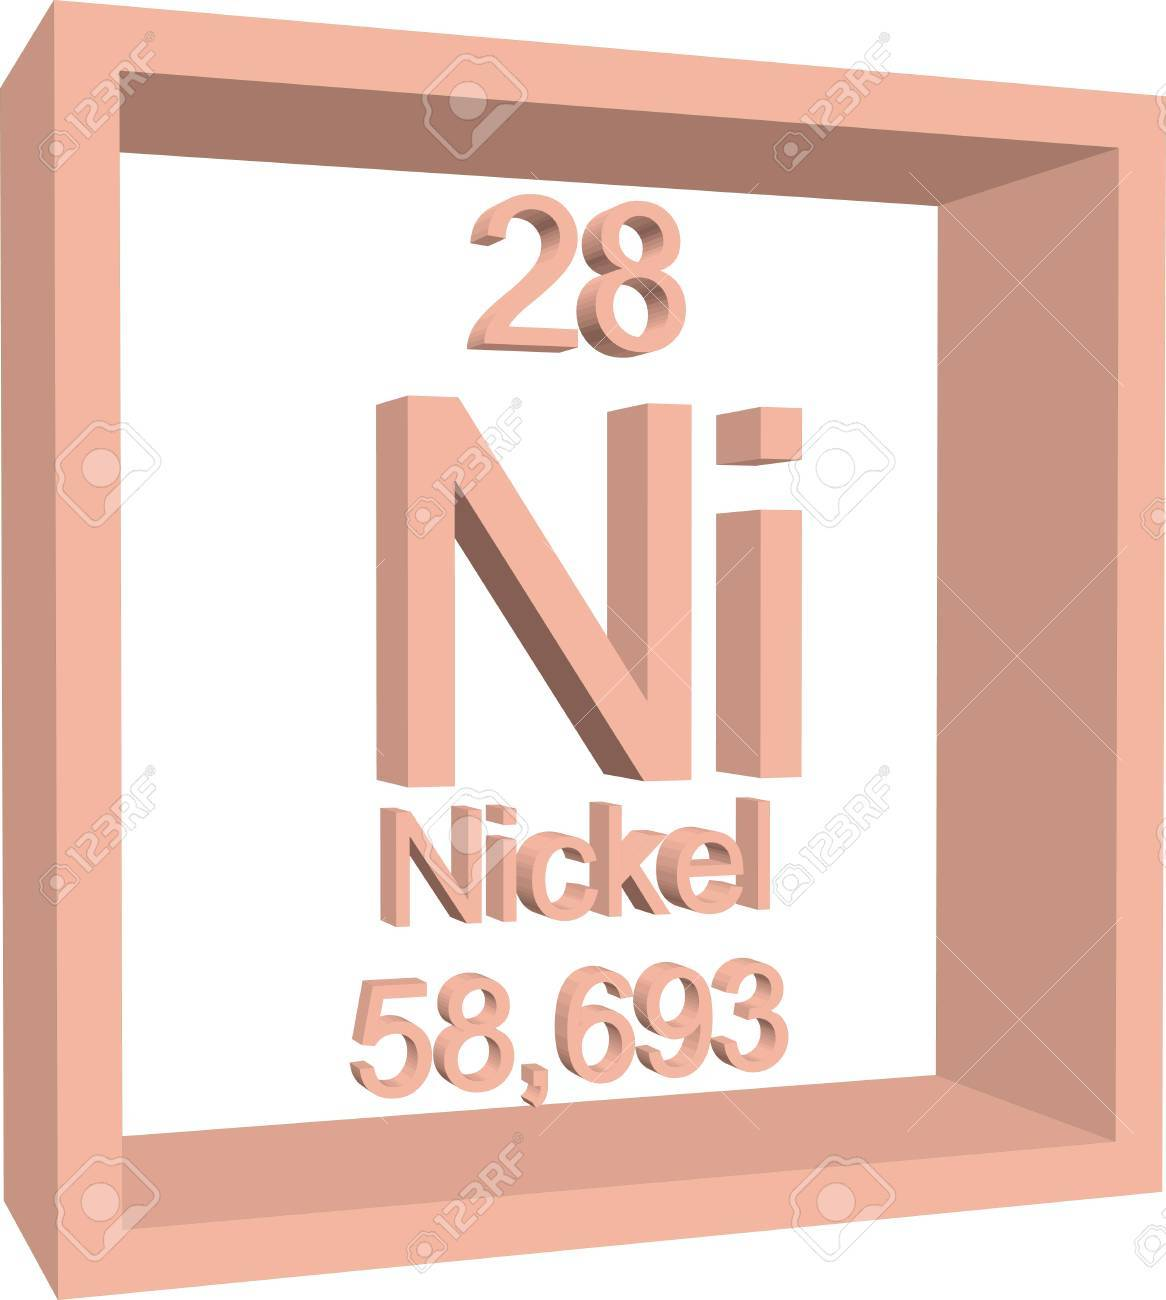 Periodic table of elements nickel royalty free cliparts vectors periodic table of elements nickel stock vector 57962862 buycottarizona Images